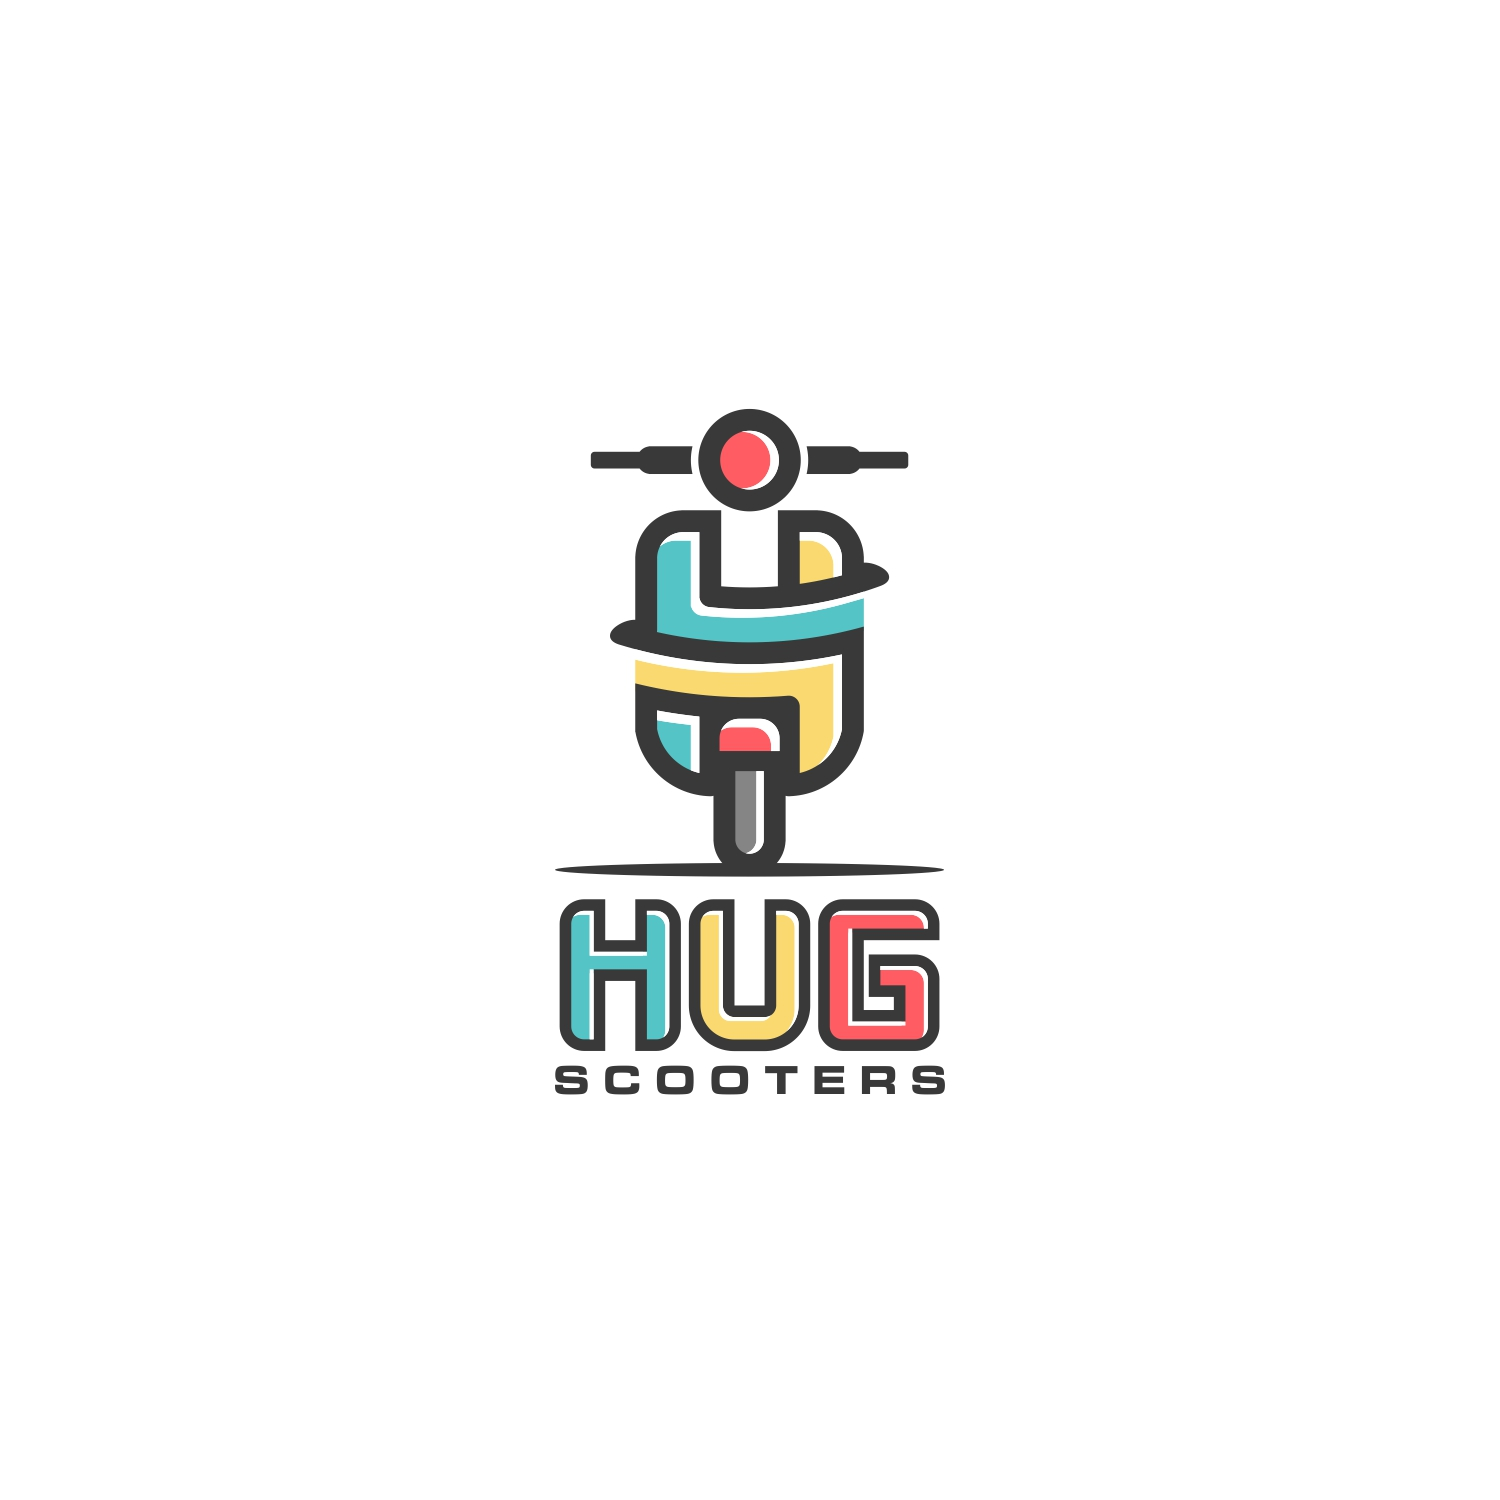 Hug Scooter logo by SON Design